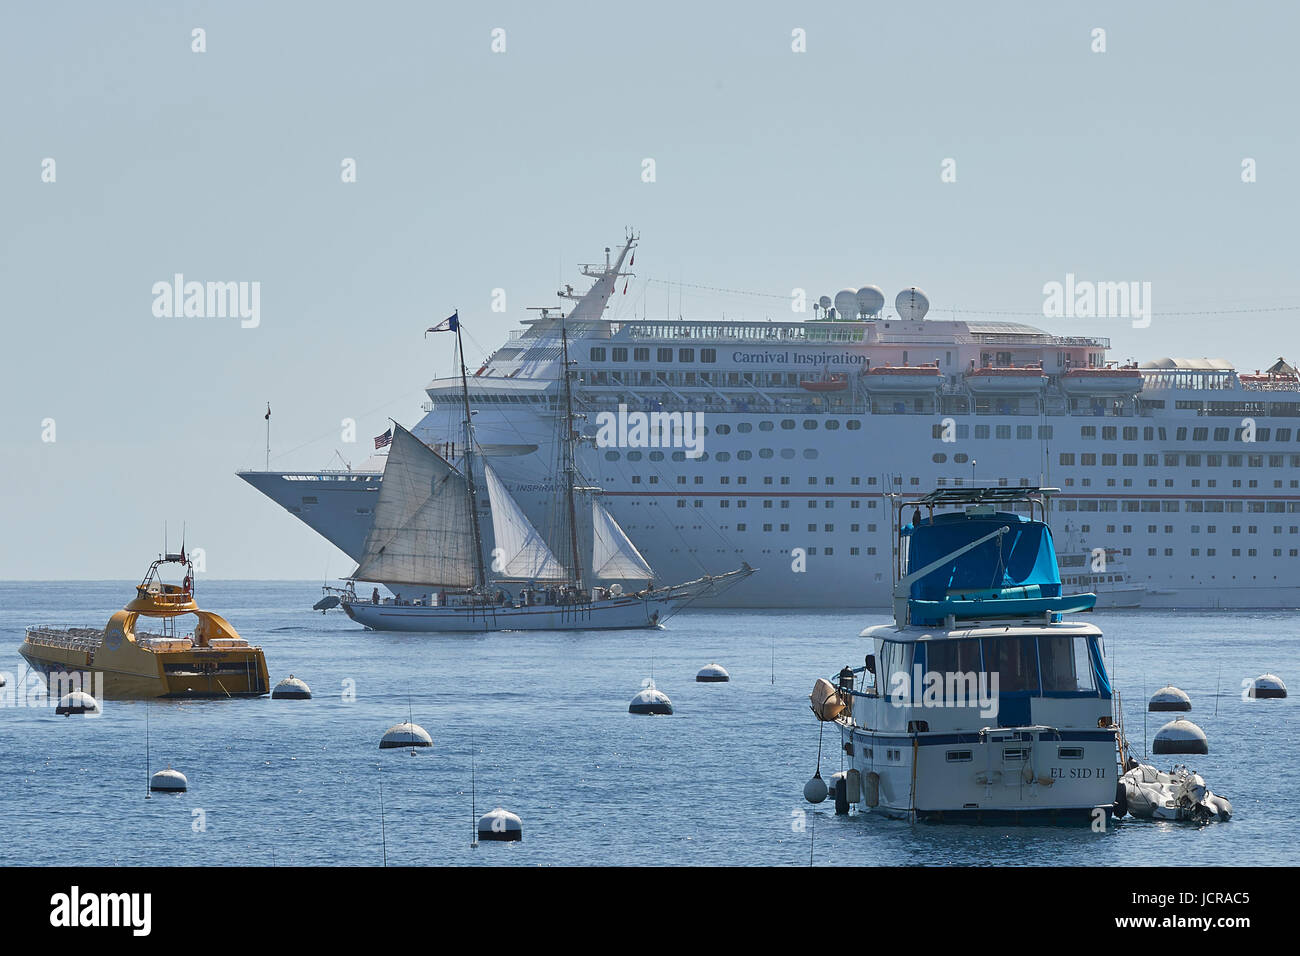 square rigged tall ship under sail passes the cruise liner